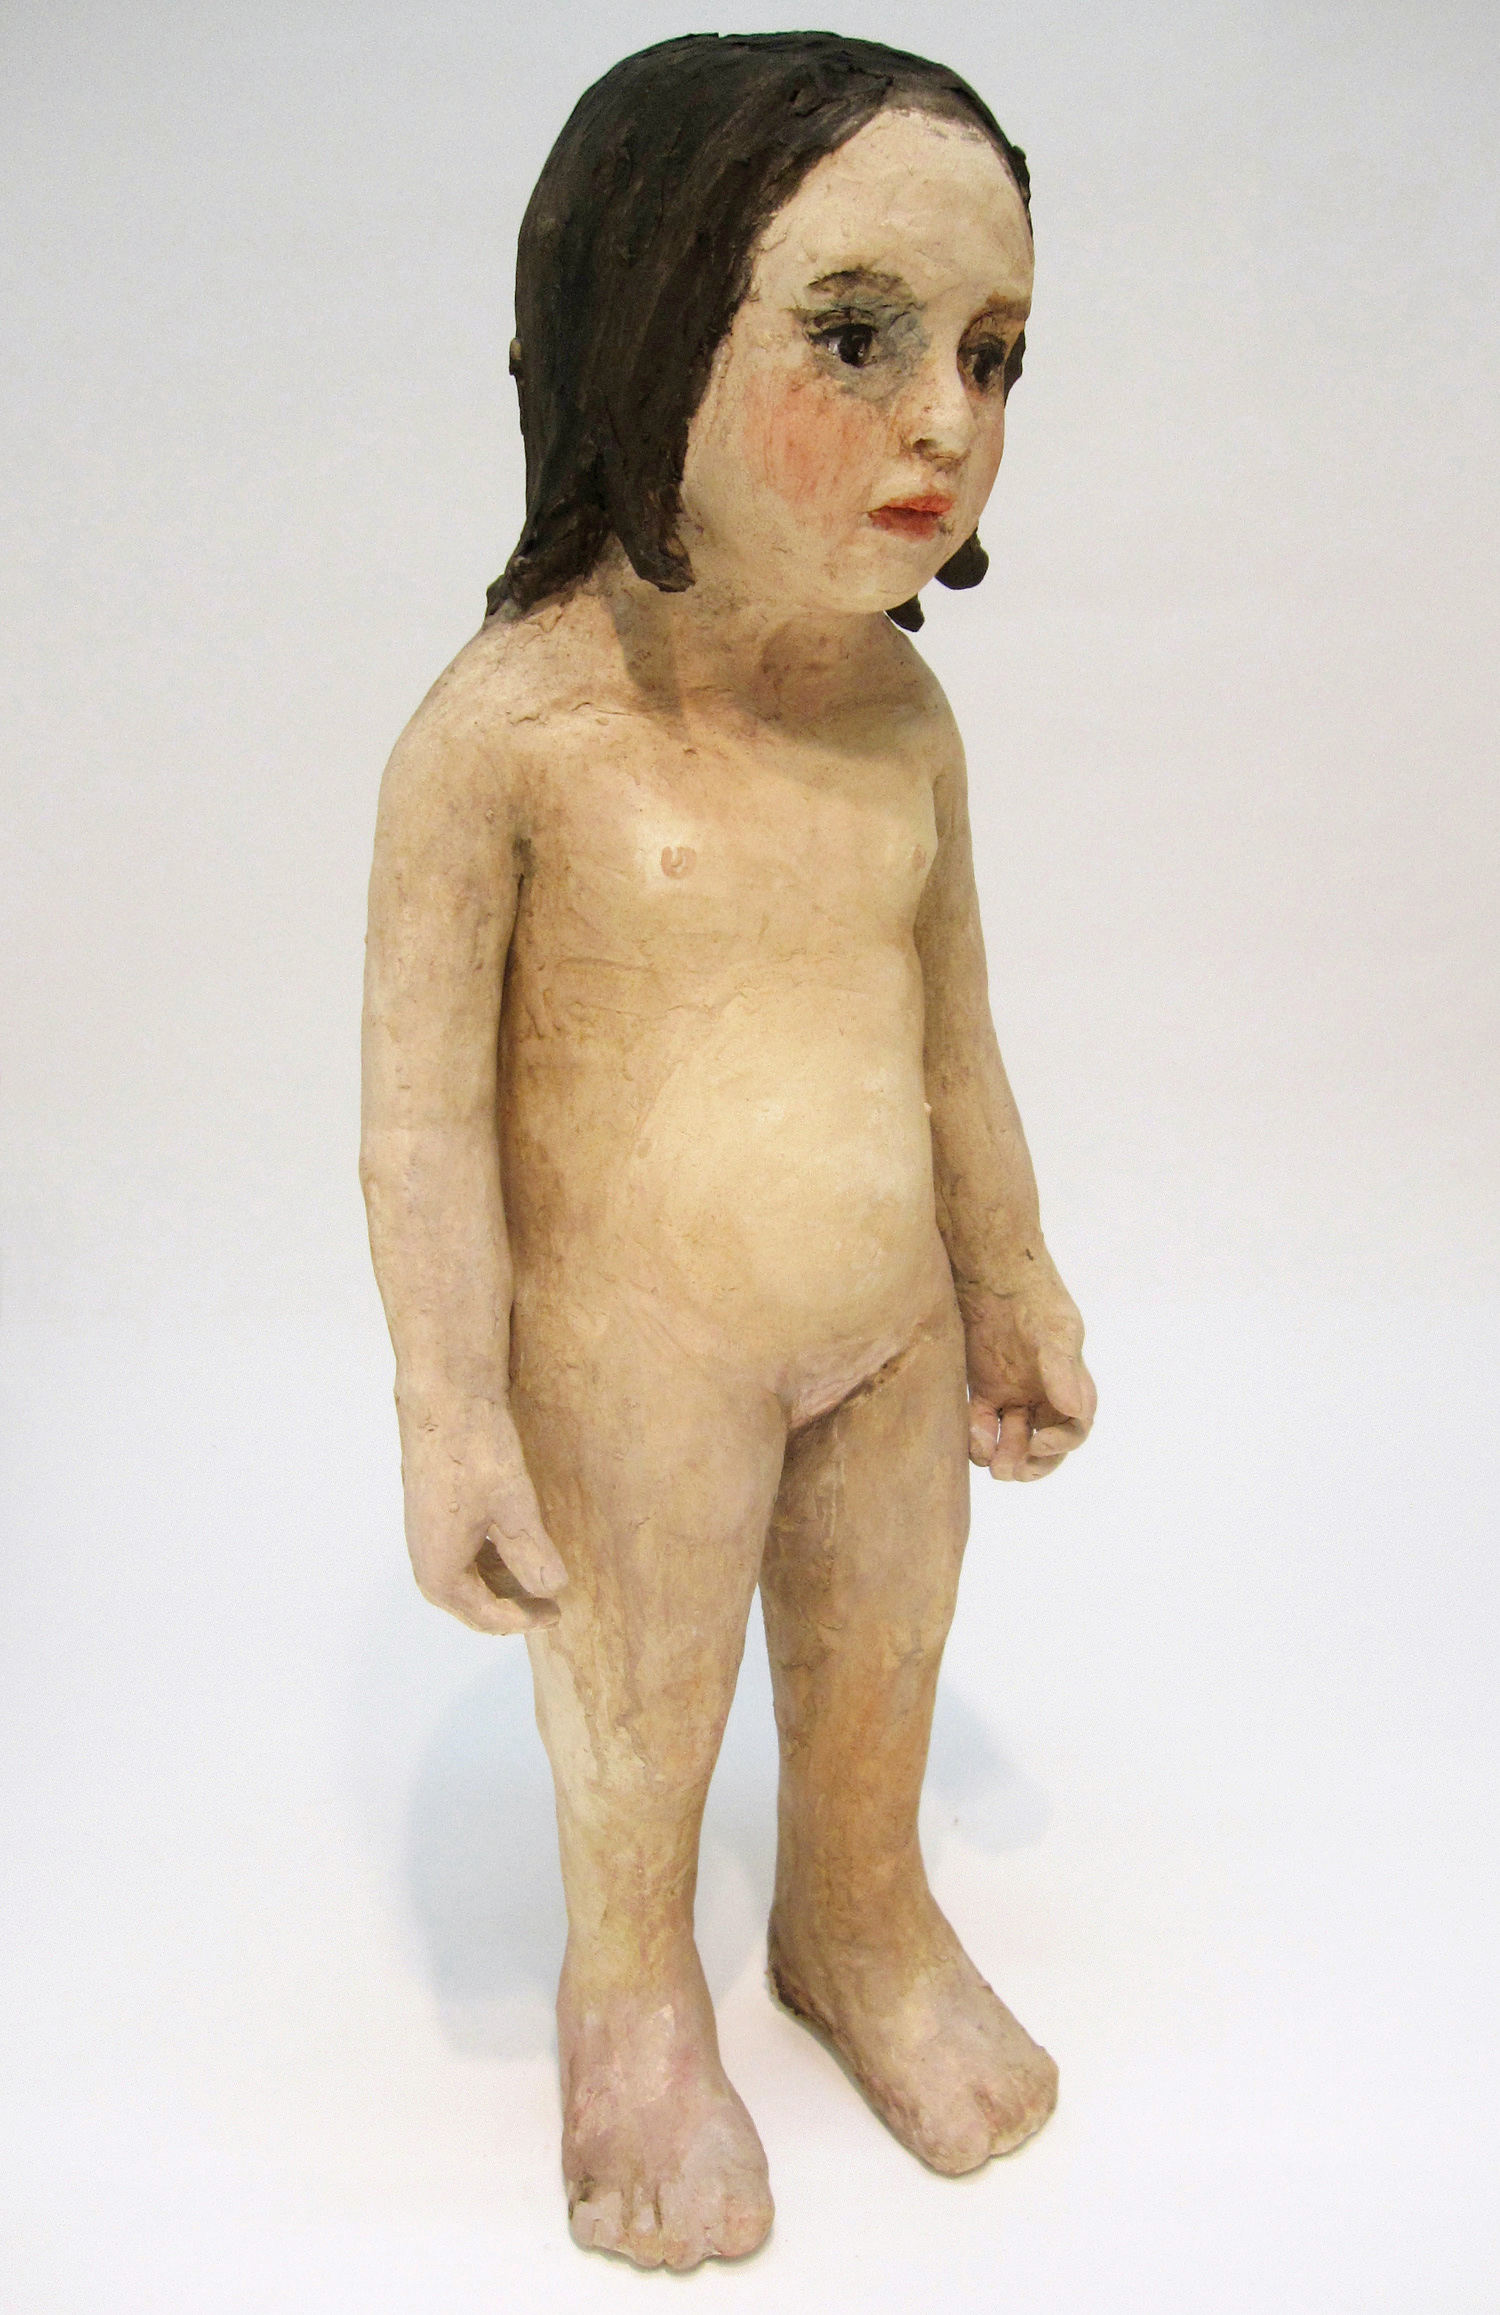 Girl Looking, 2010, Watercolor on ceramic, 29 X 11 X 8 in.